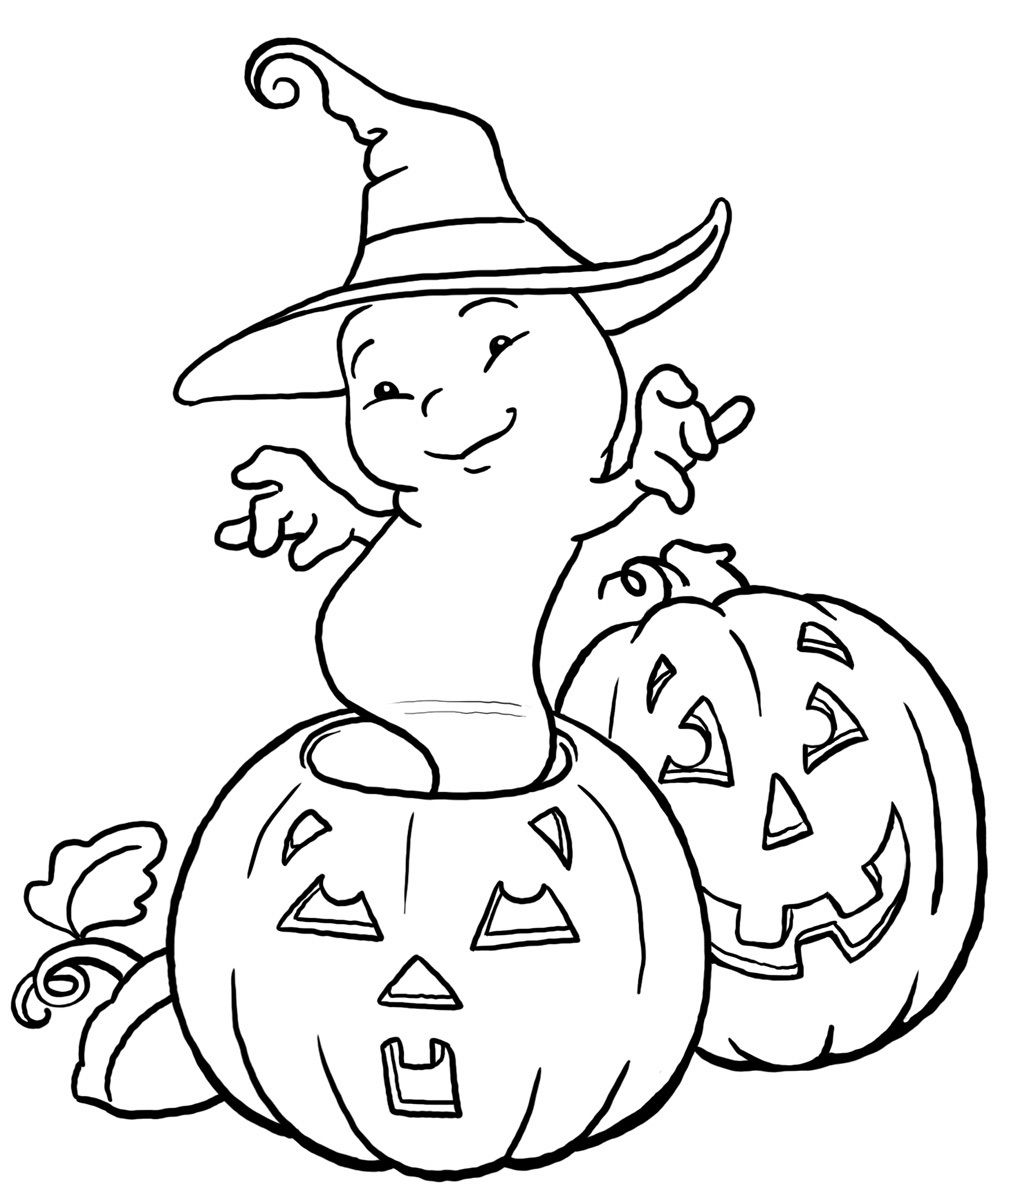 halloween bats coloring pages bat halloween coloring pages color pages on halloween halloween bats coloring pages